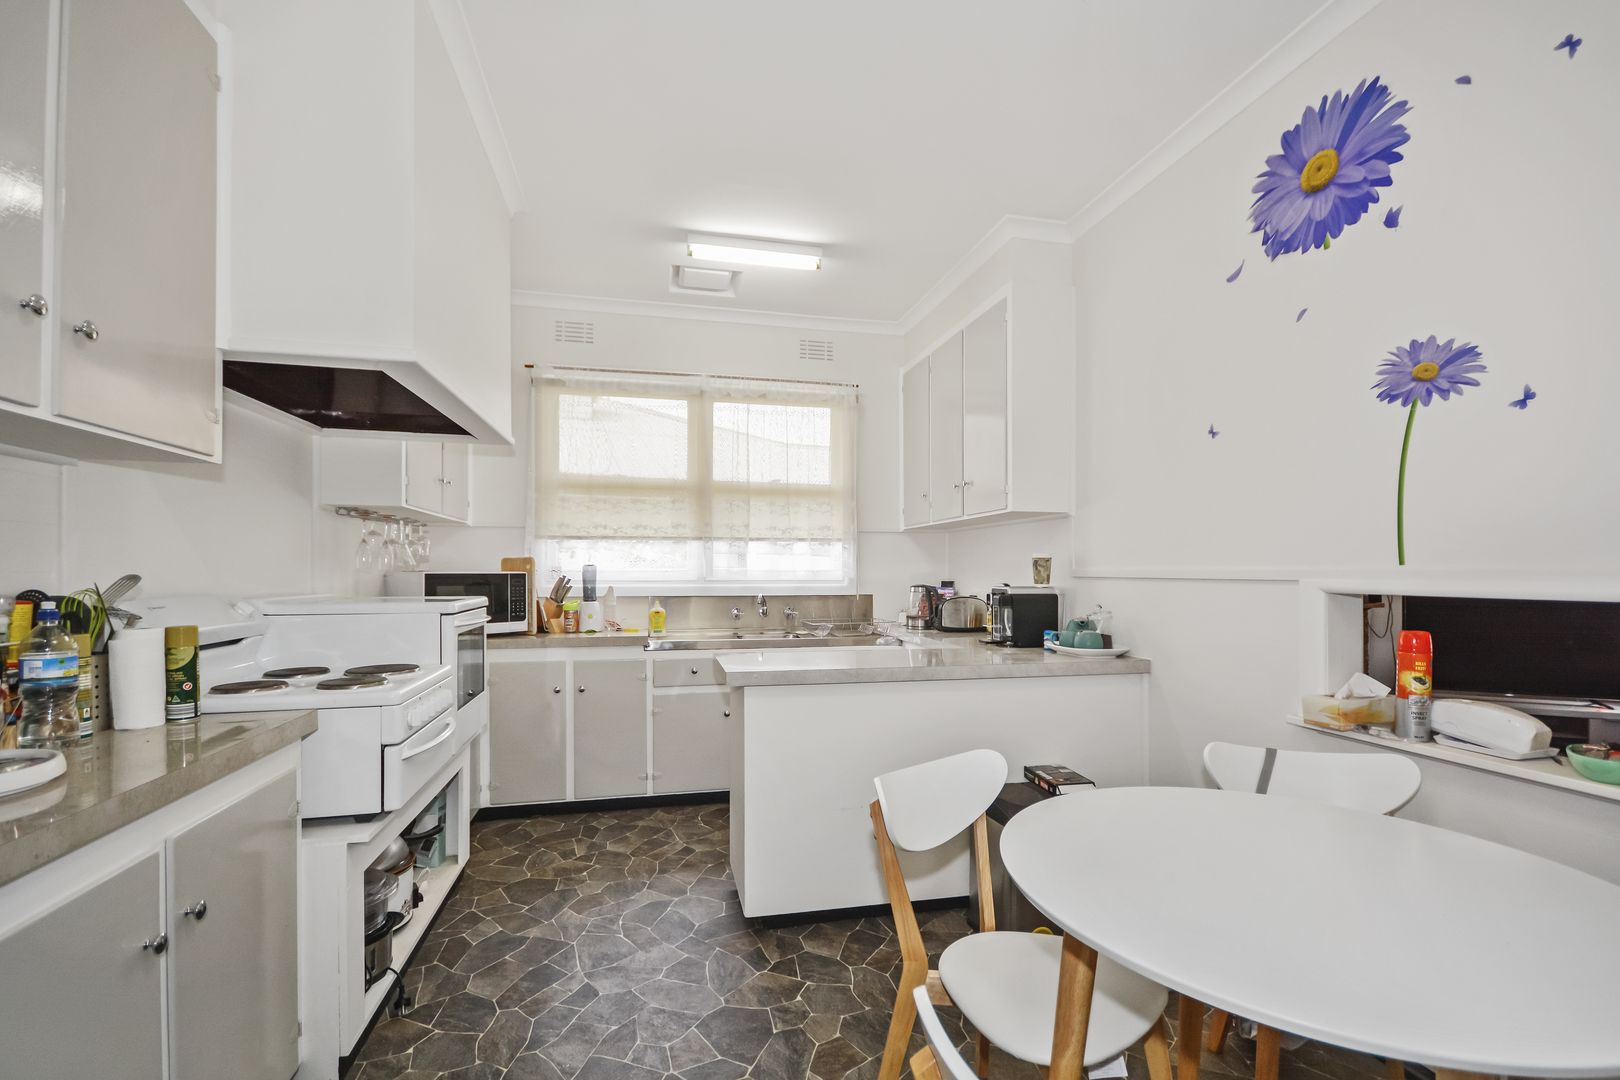 1 Proctor St, Stawell VIC 3380, Image 2